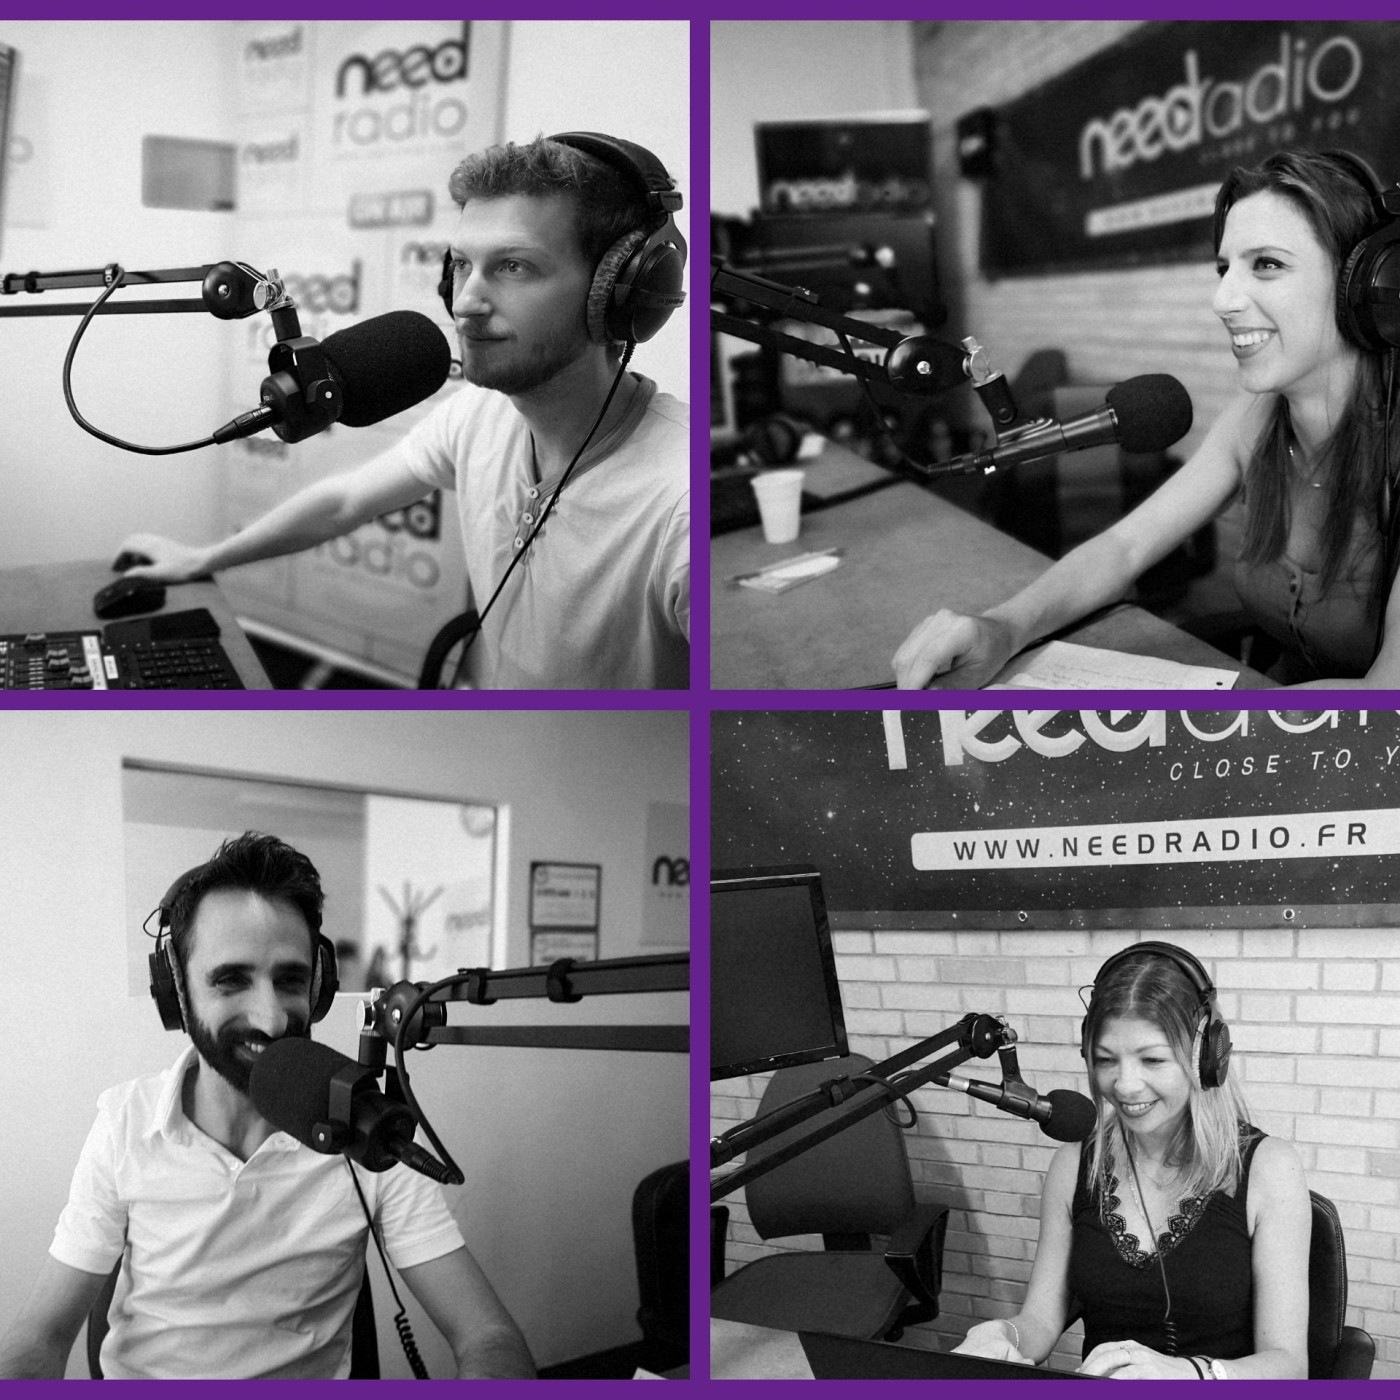 PunchLive sur NEED Radio (17/02/20)